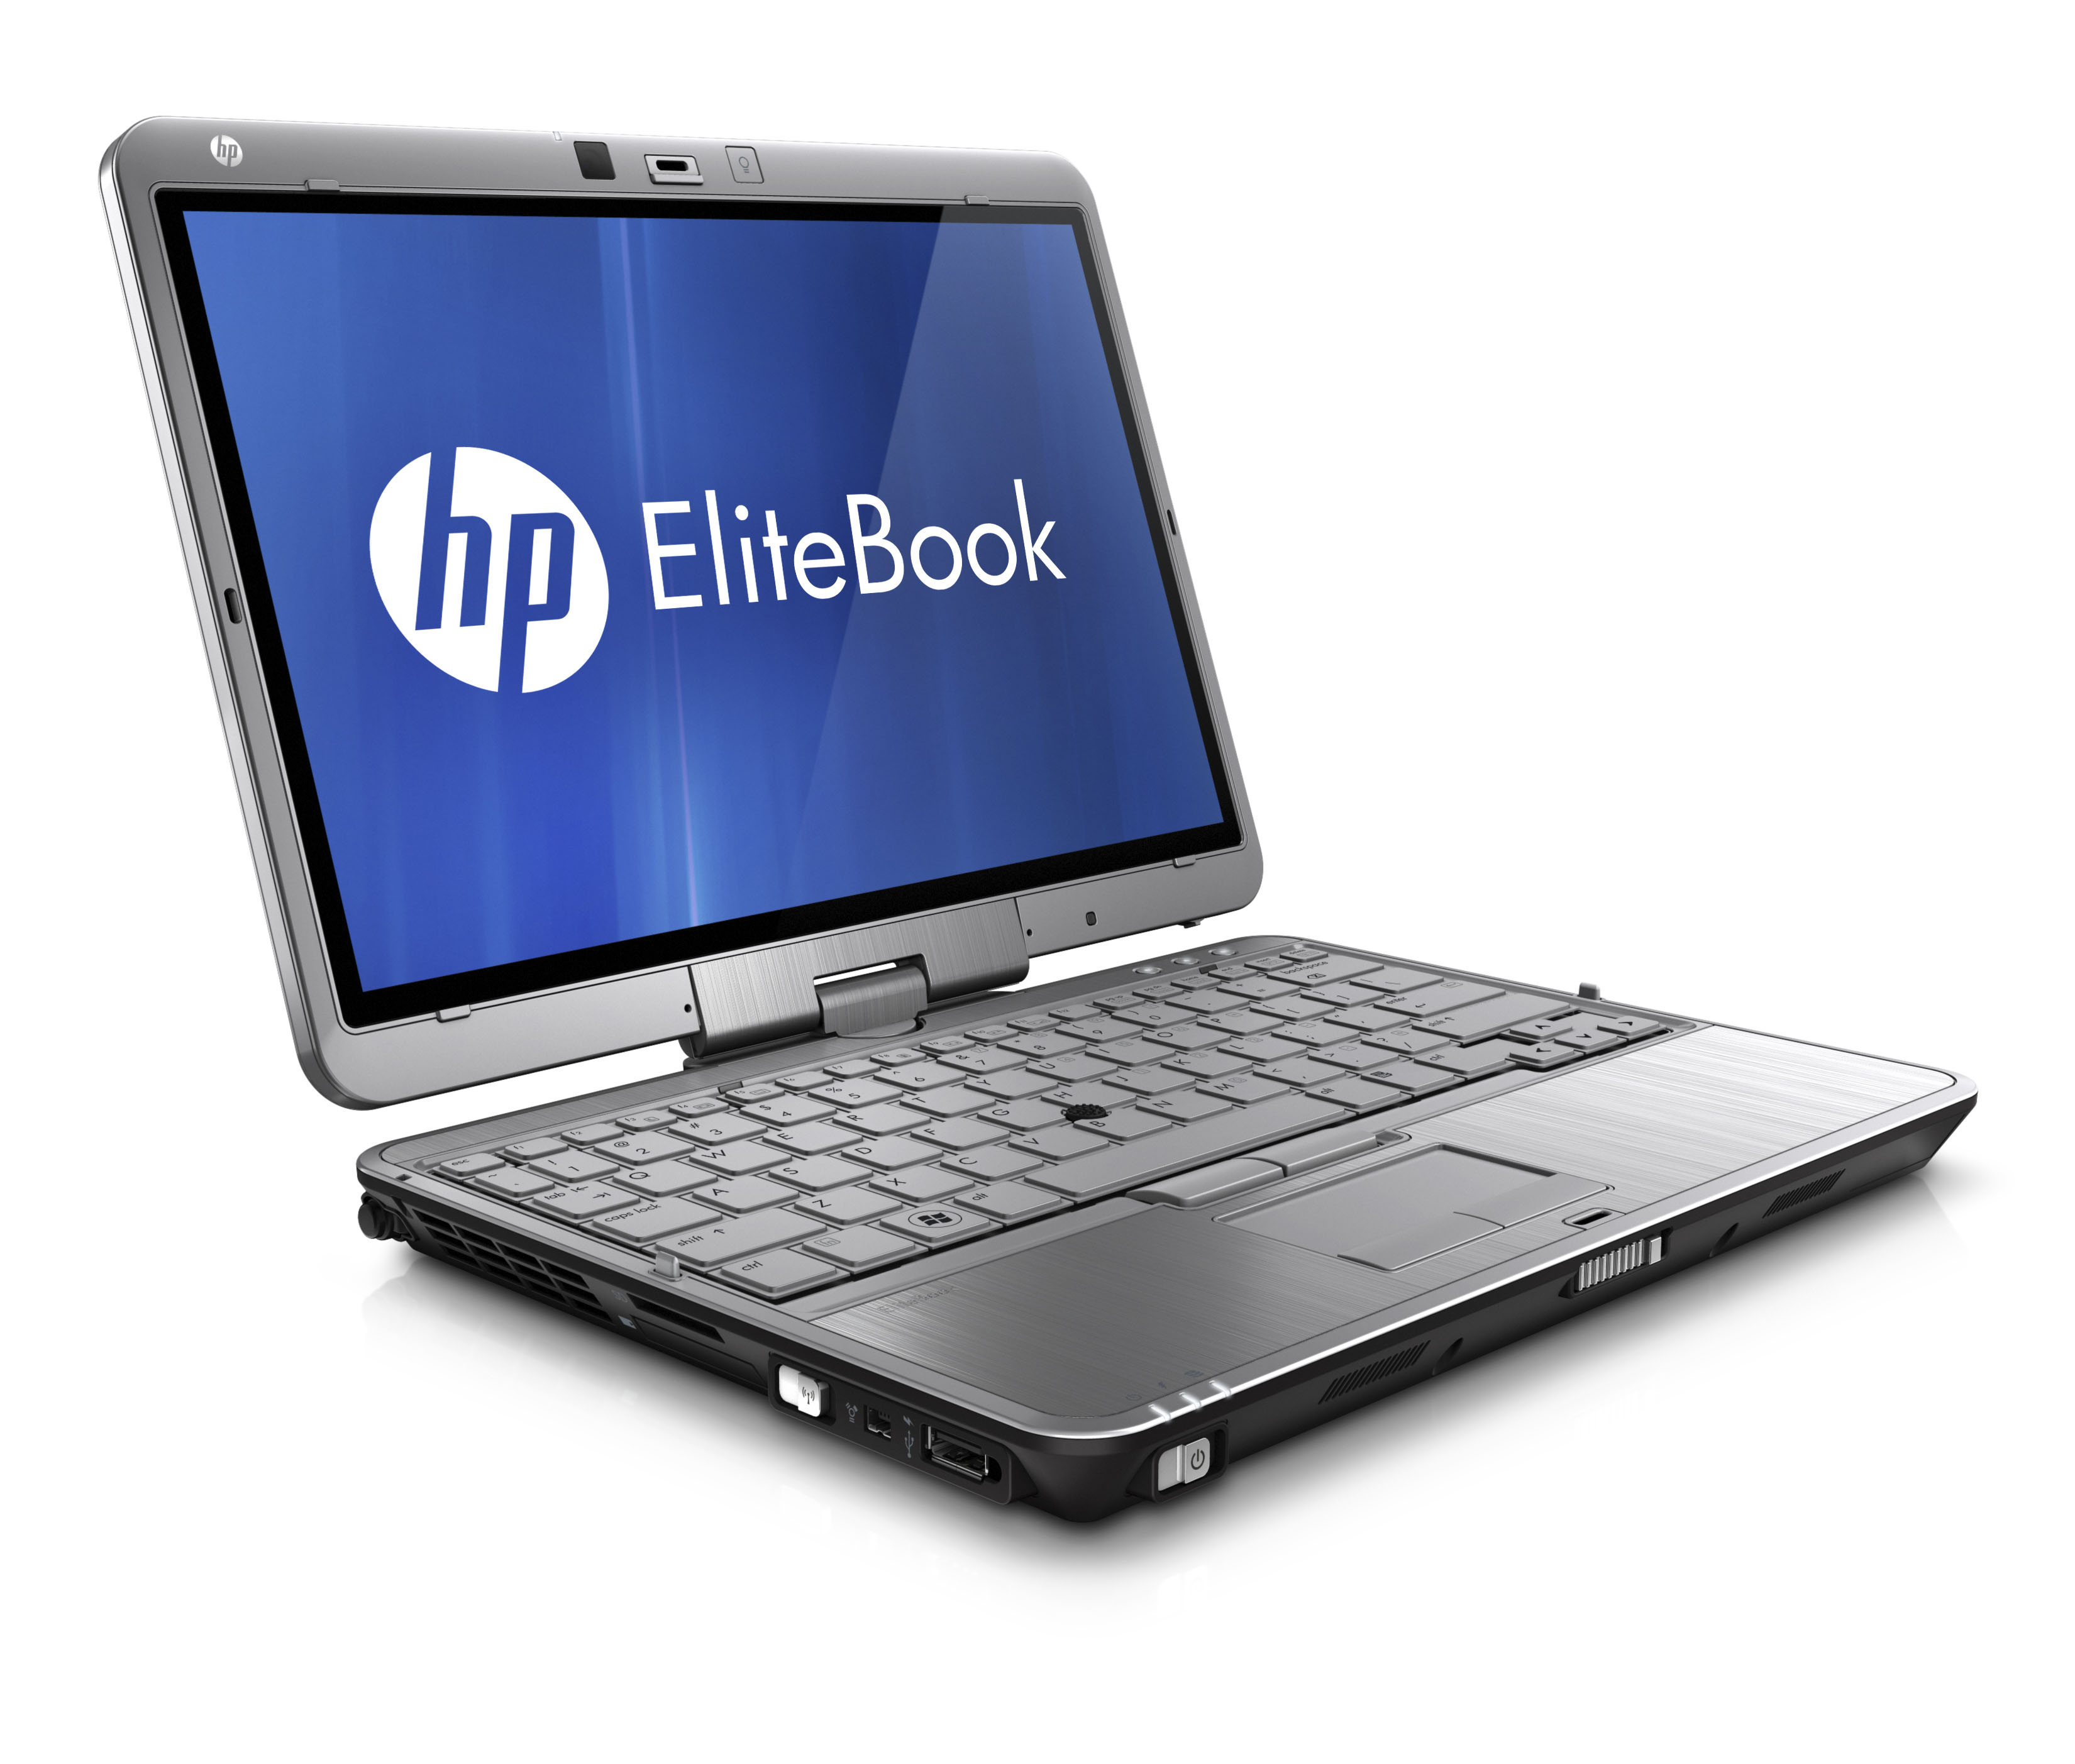 HP Elitebook 2760P, 4GB, 320GB HDD